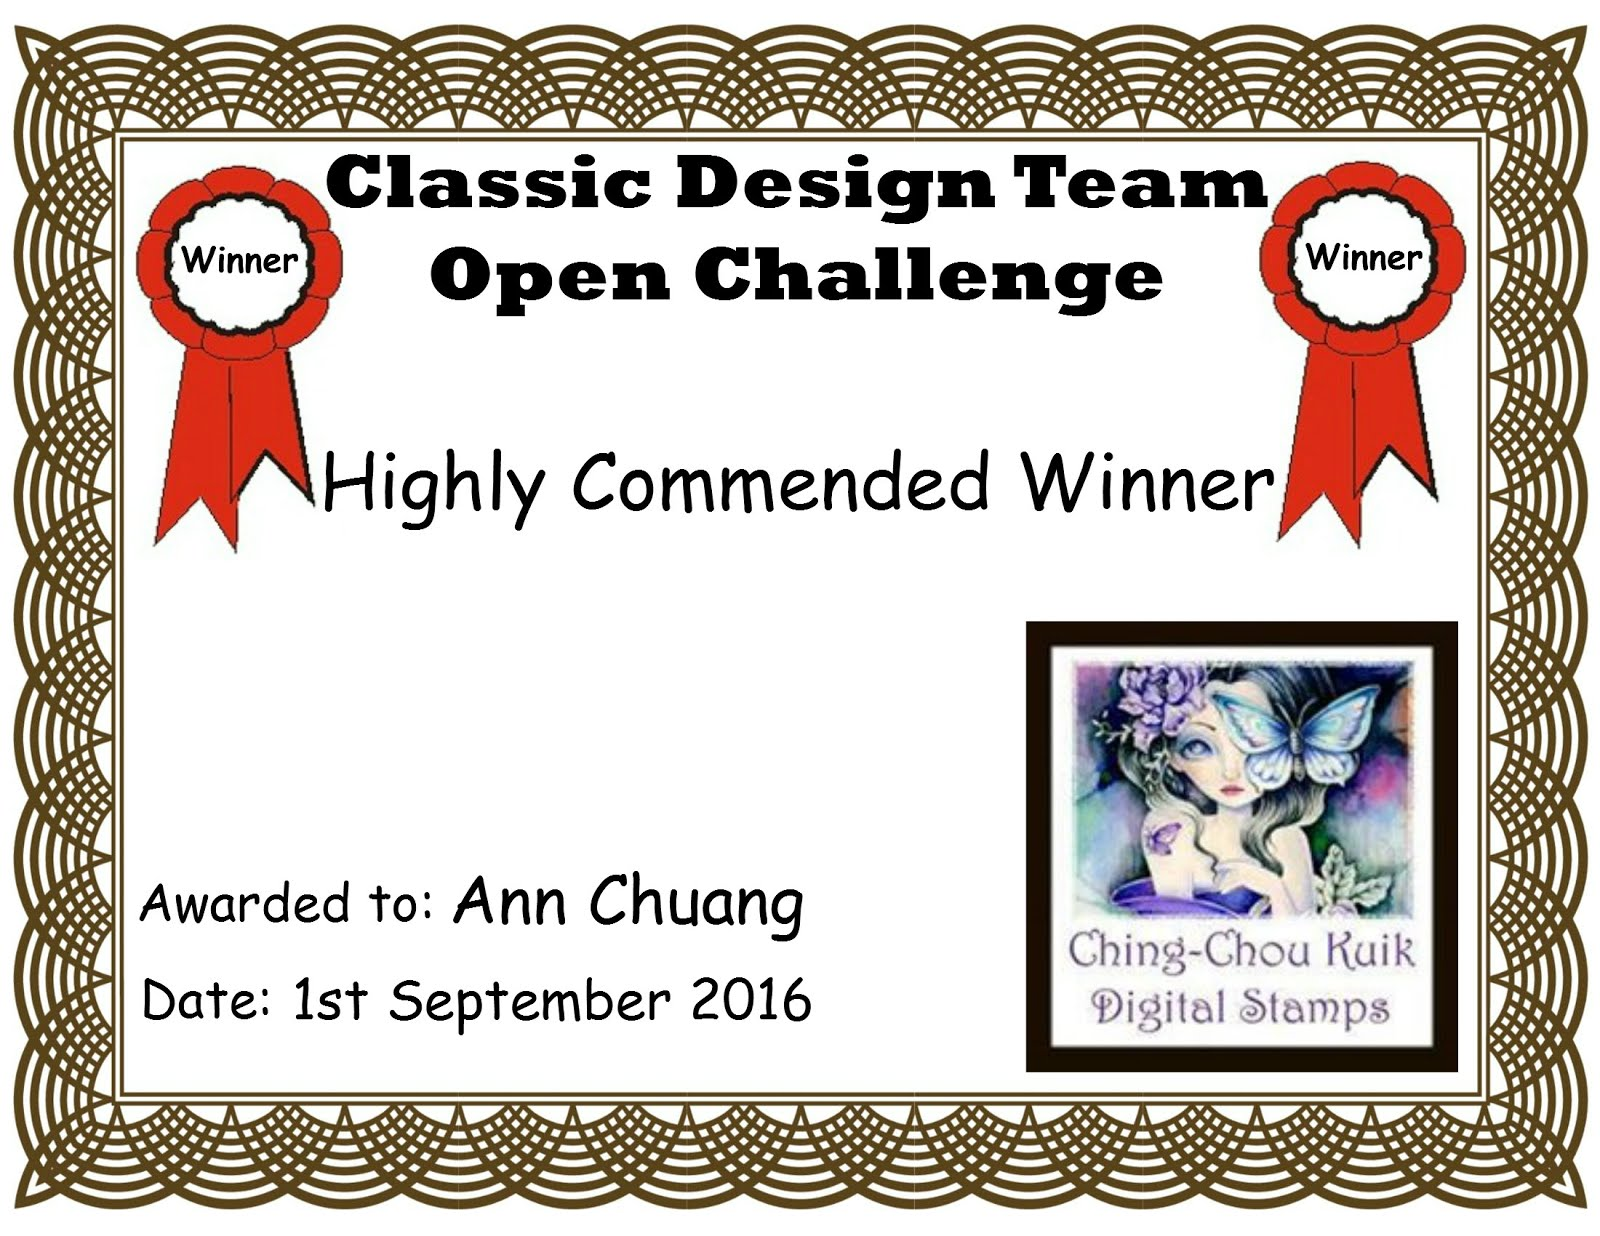 Classic Design Team Open Challenge Highly Commended Winners